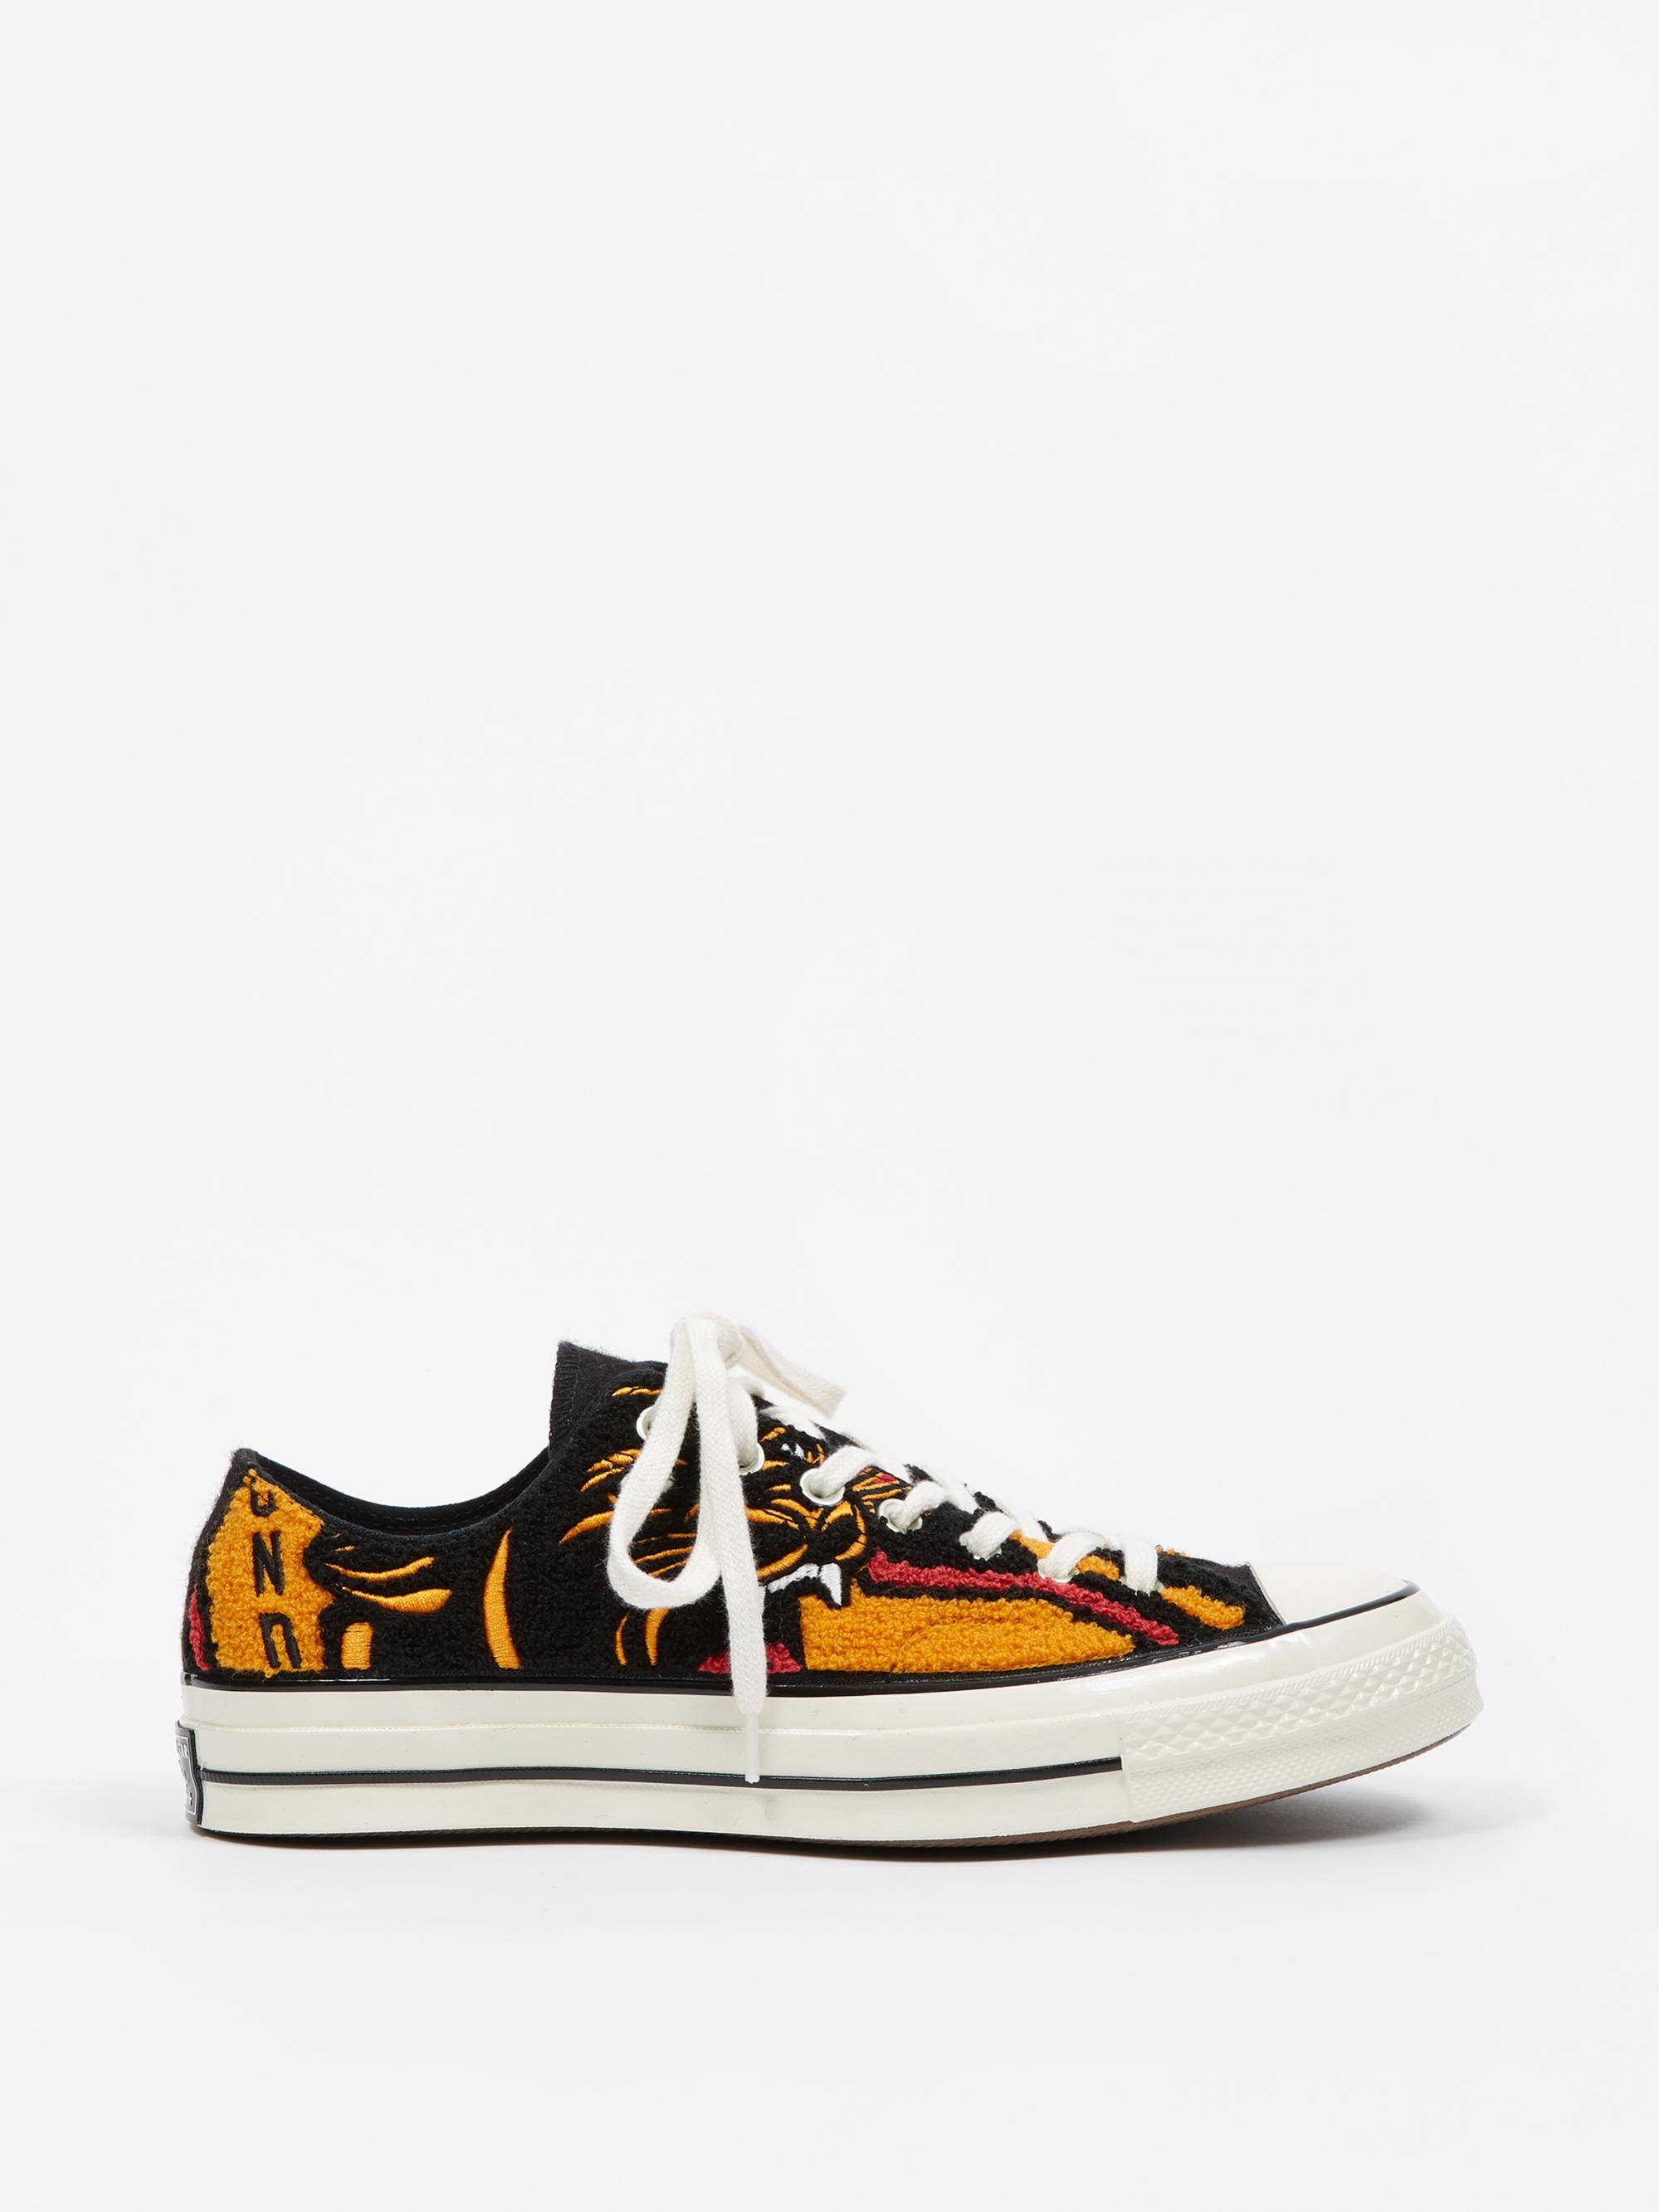 reputable site 49776 dafbd Converse x Undefeated Chuck Taylor All Star 70 - Apricot